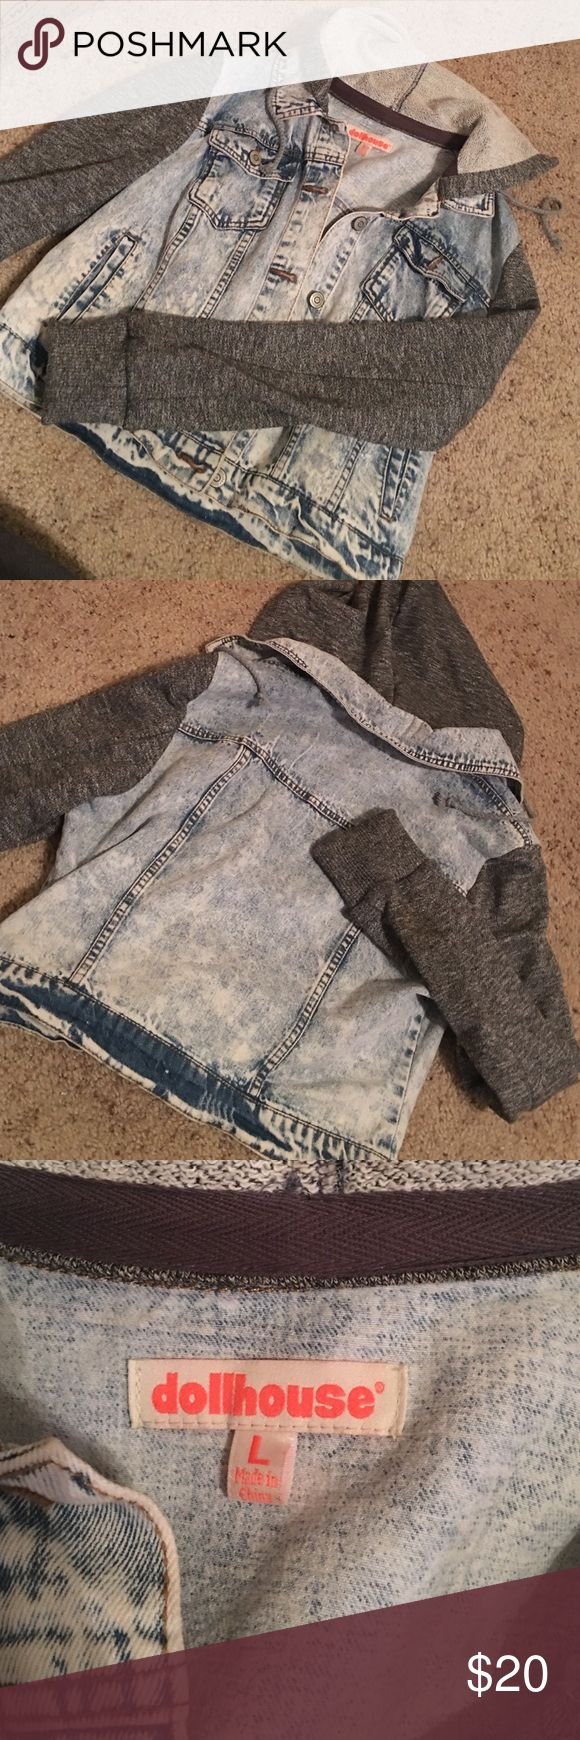 Hoodie Jean Jacket Bought This At Charlotte Russe, Worn Twice. Charlotte Russe Jackets & Coats Jean Jackets